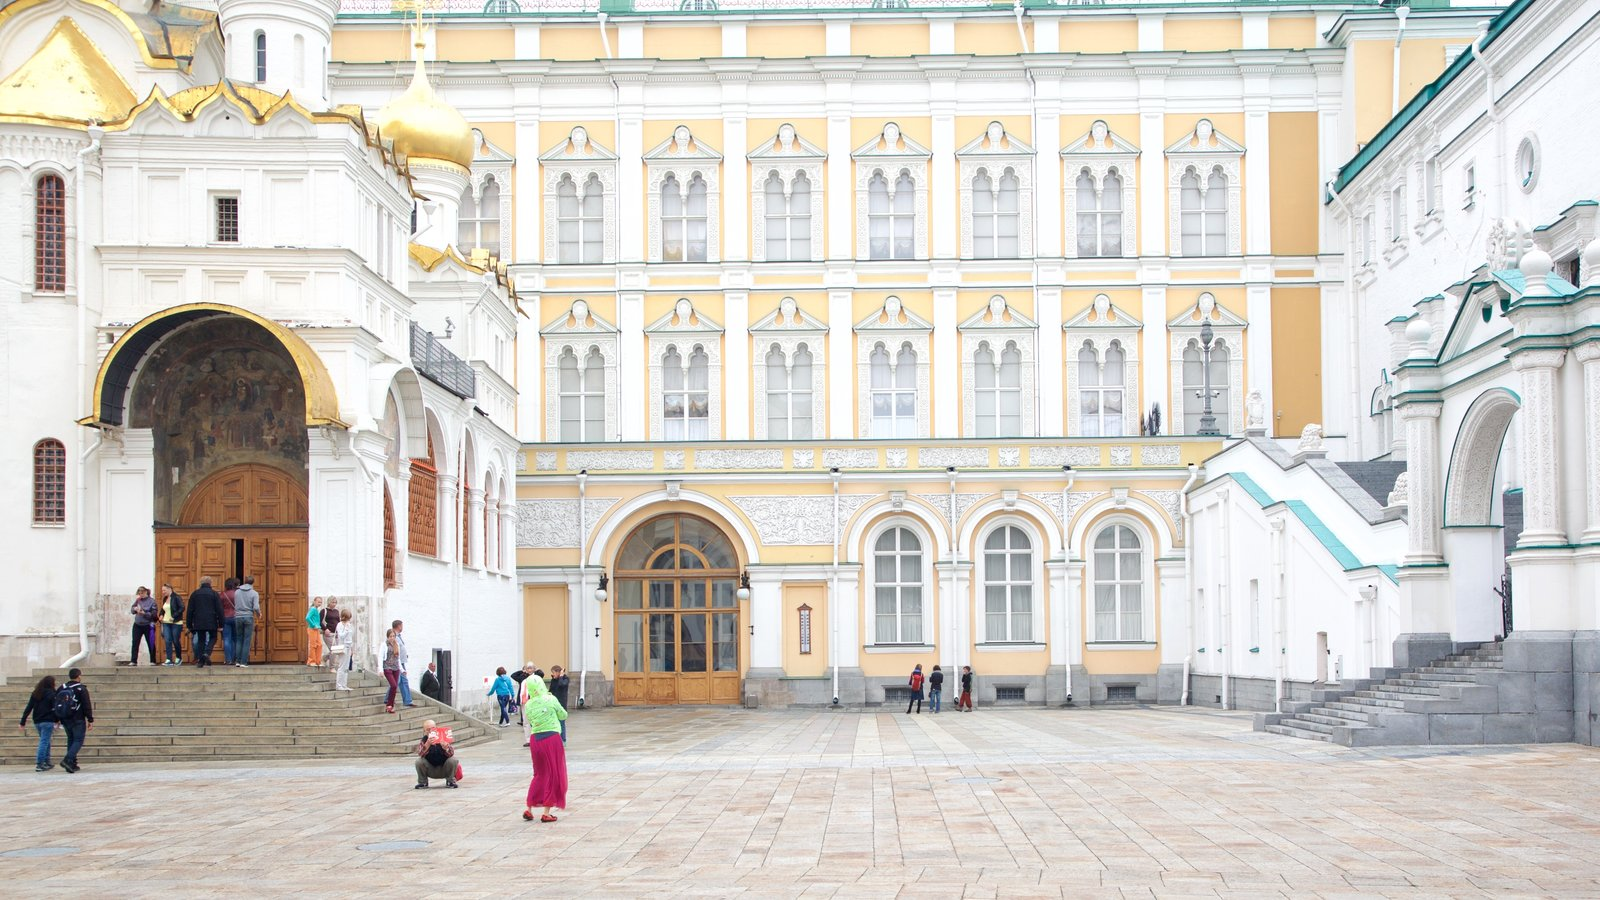 Kremlin Armoury Museum featuring a square or plaza and heritage architecture